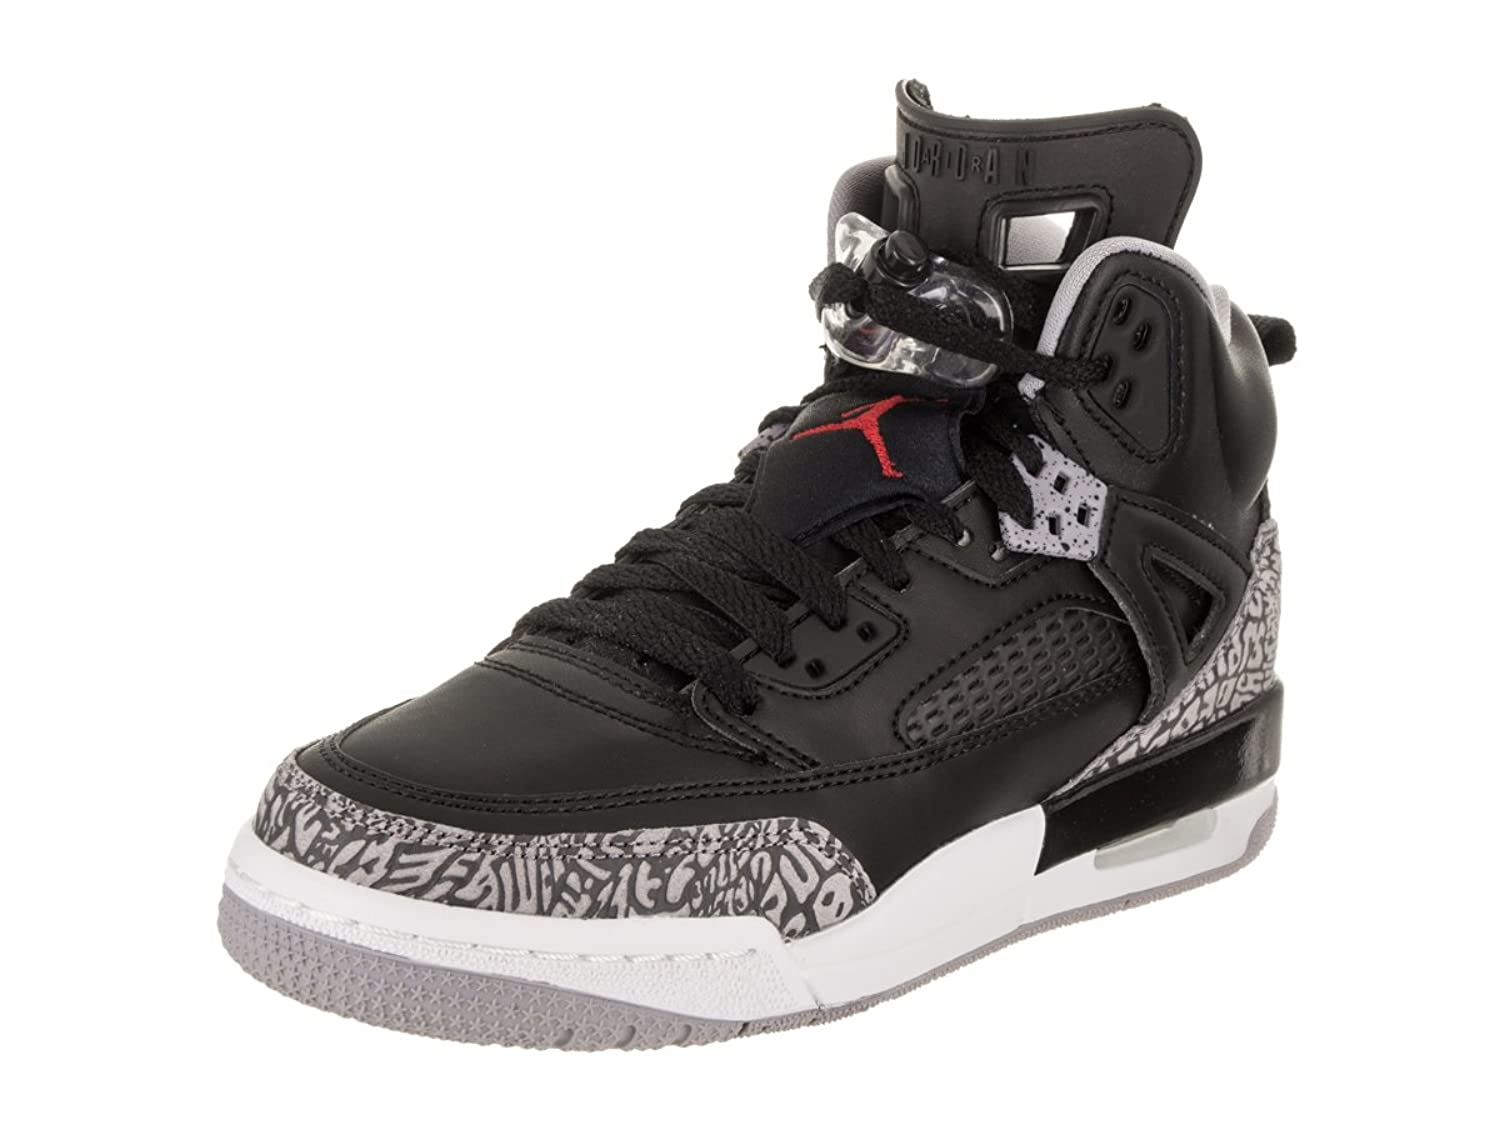 d3a3a14e169d Nike JORDAN SPIZIKE BG boys basketball-shoes 317321-034 4Y - BLACK VARSITY  RED